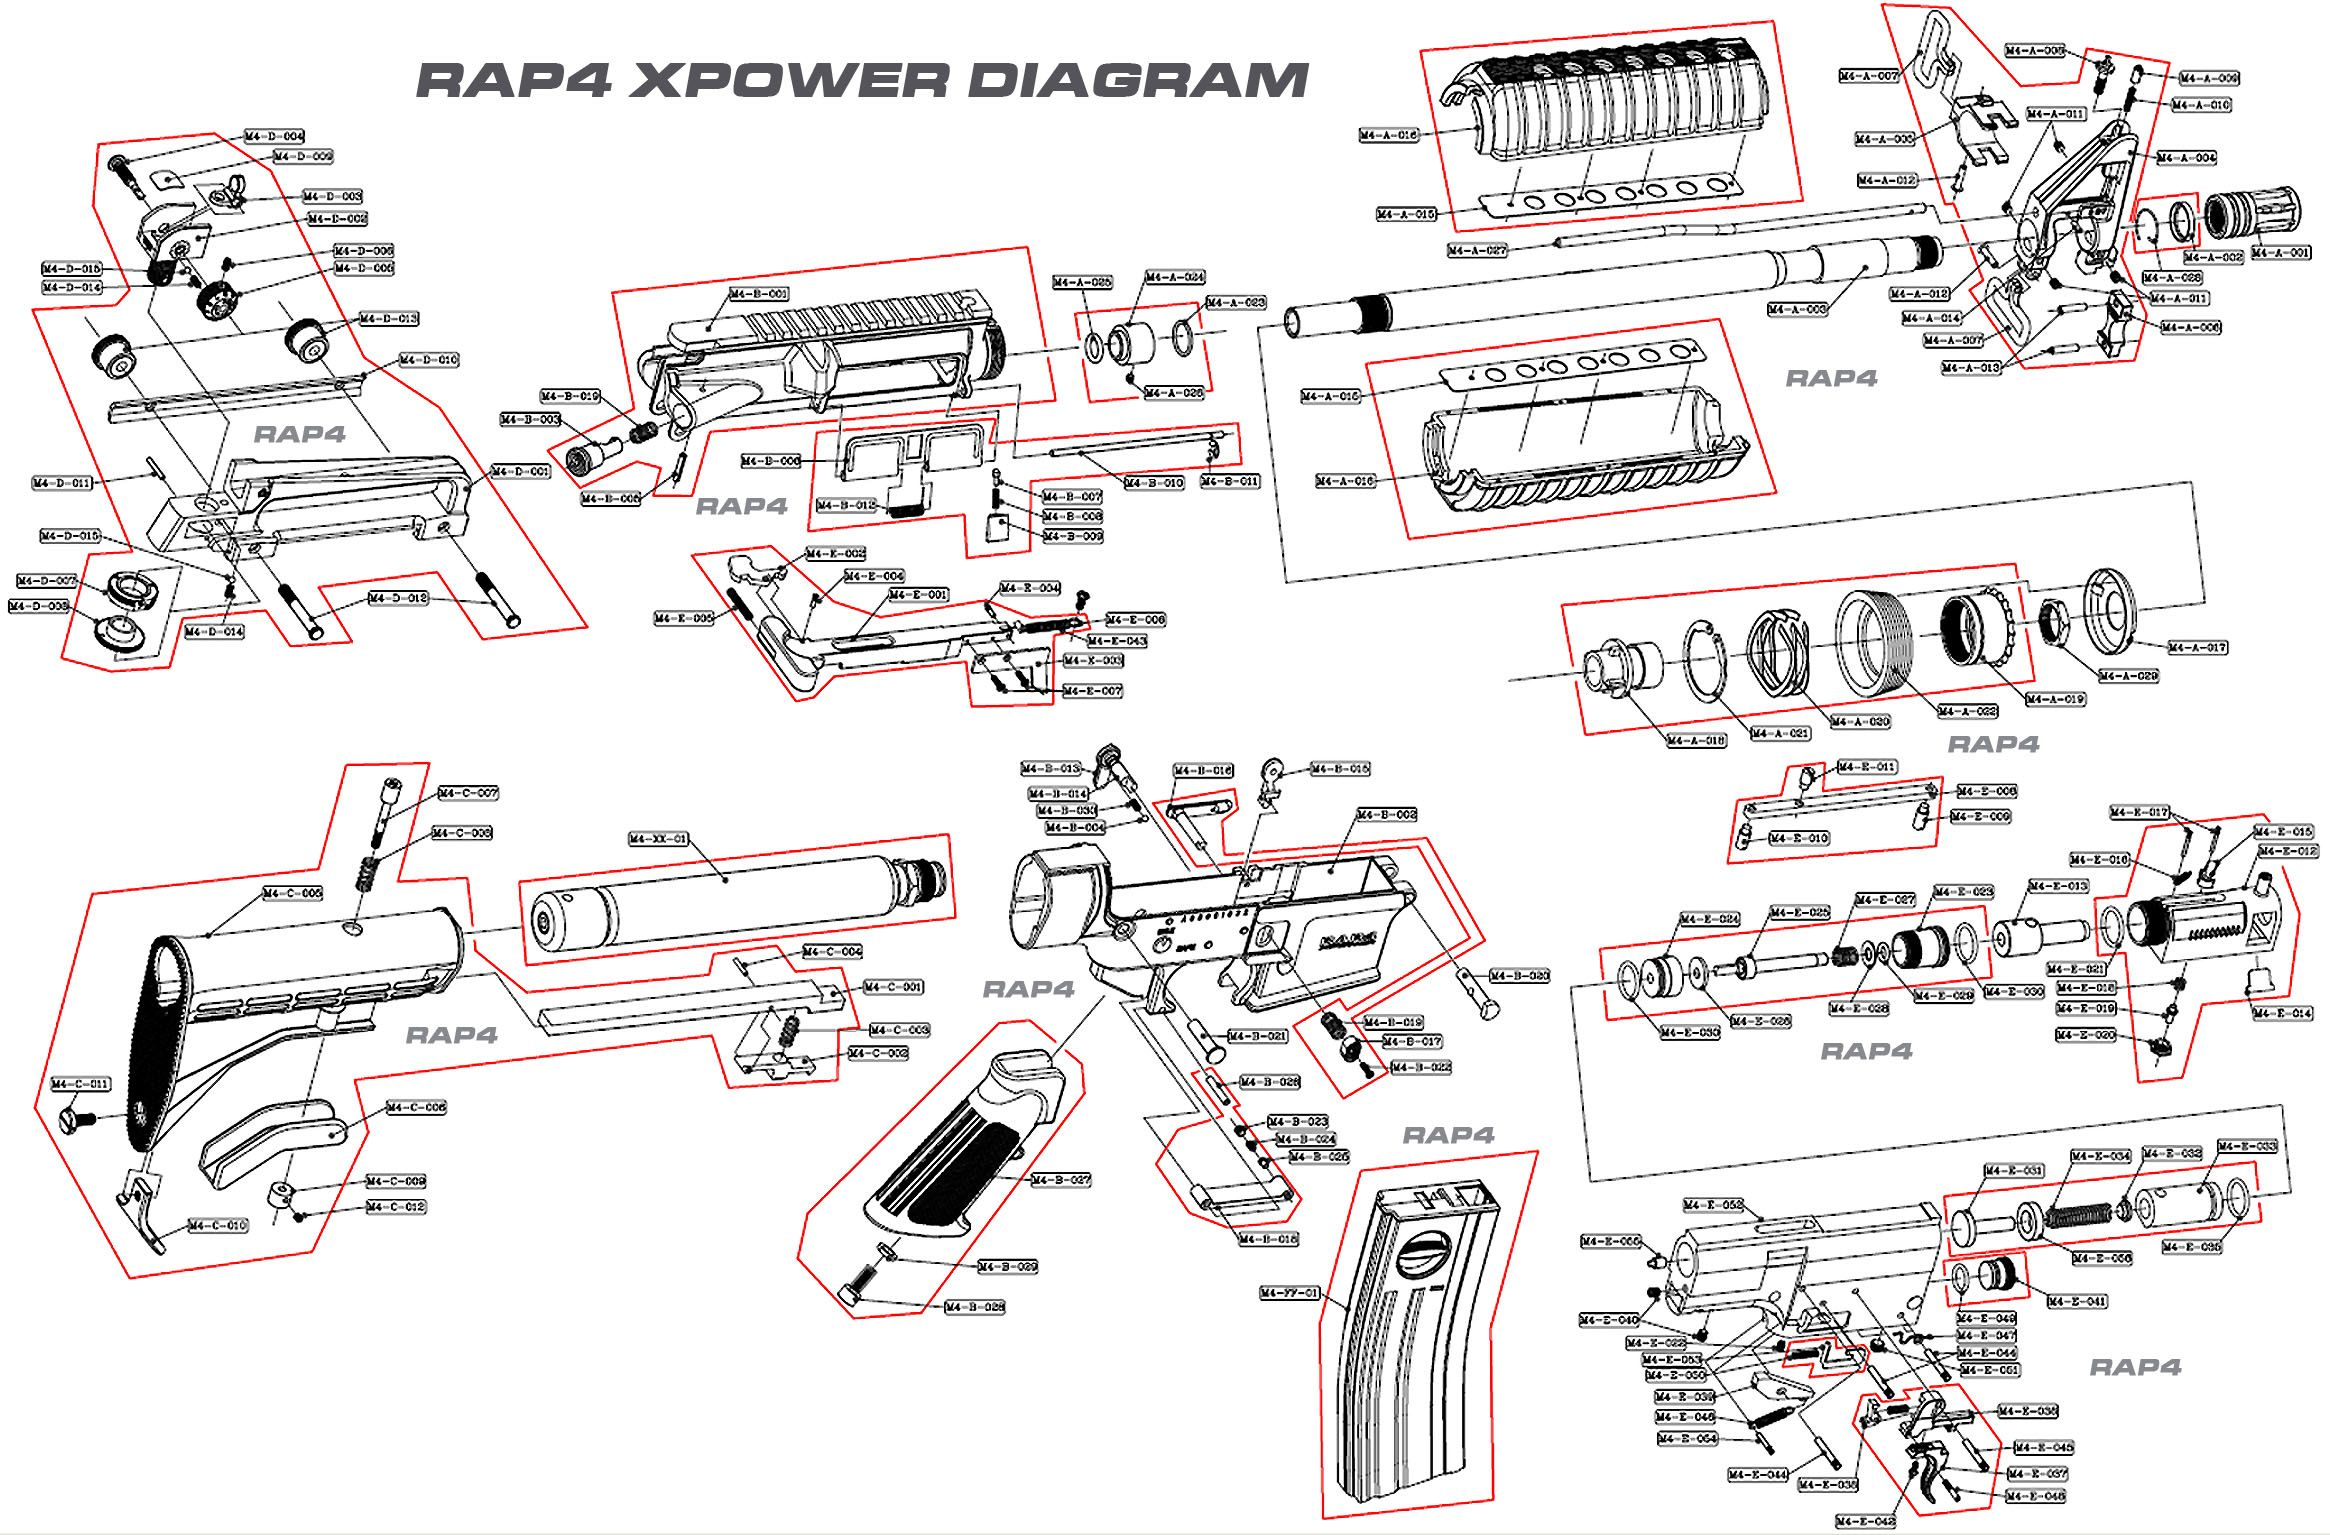 small resolution of m4 carbine schematic